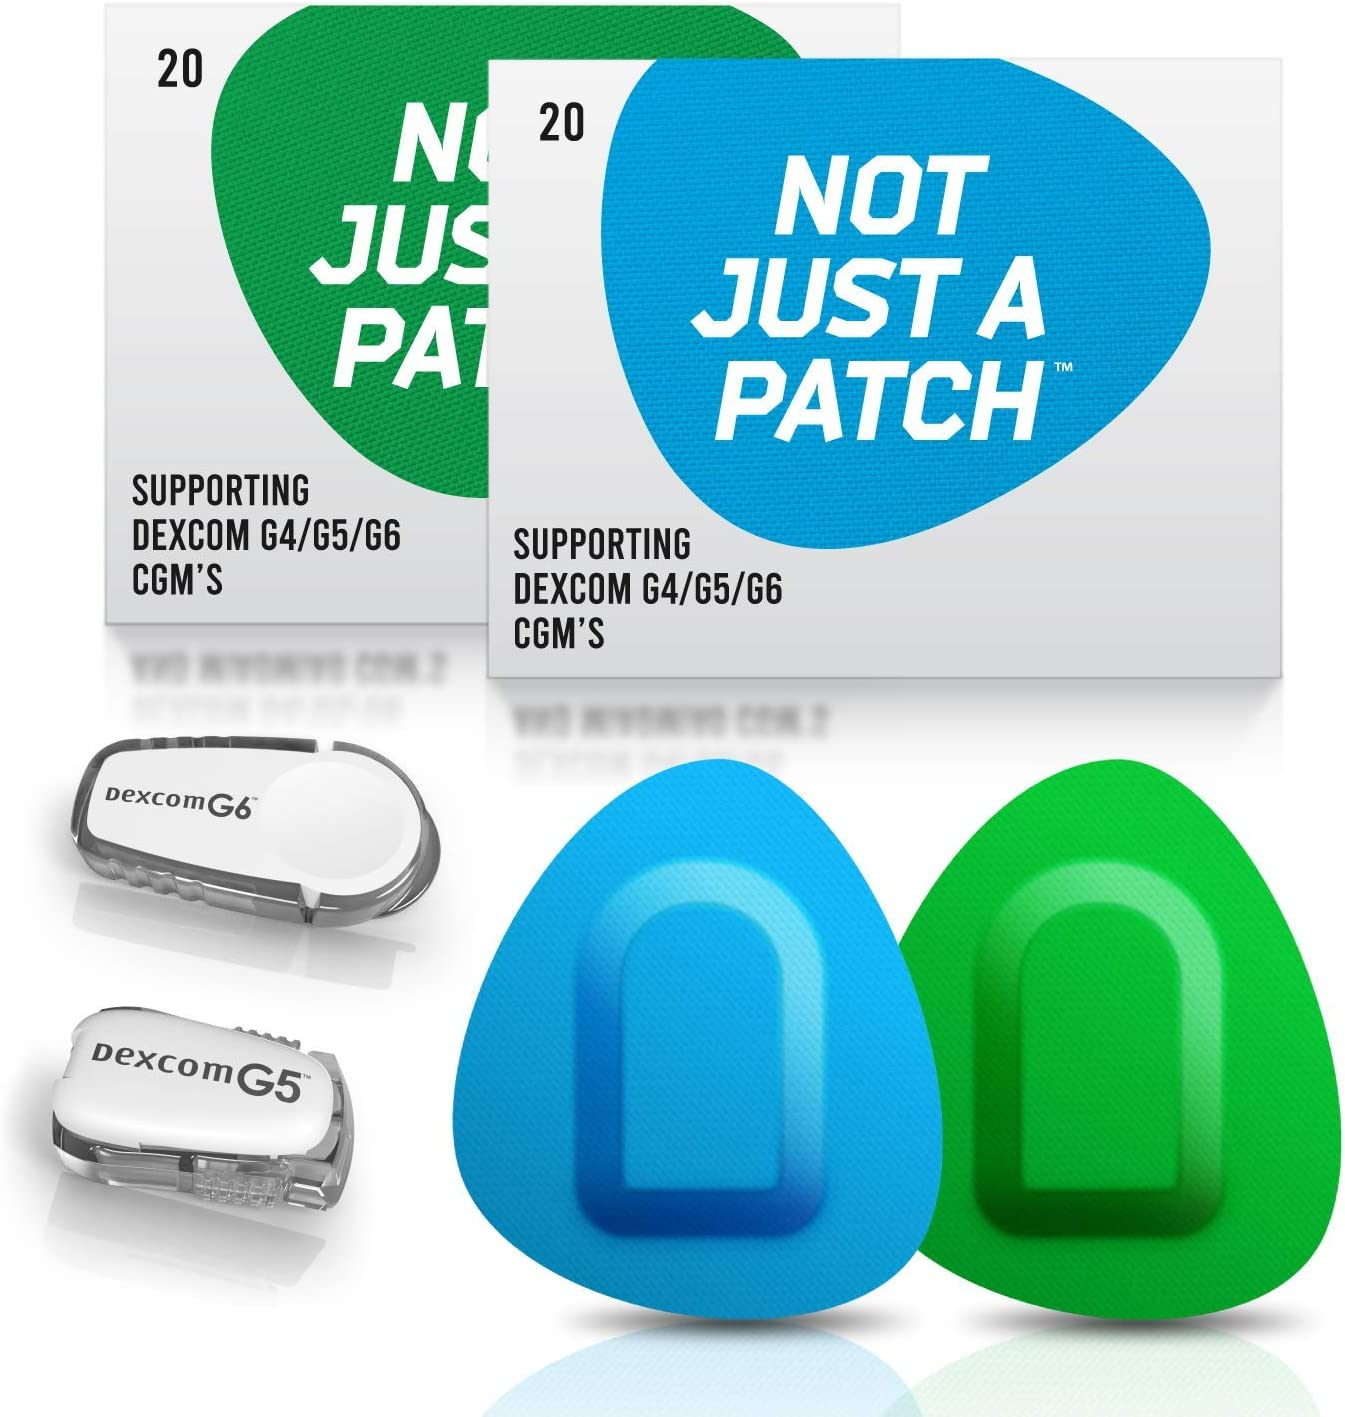 NOT JUST A PATCH Bundle of Two: Blue and Green Patches for Dexcom G5 G6 & MiaoMiao Sensors. 10+ Days - Long Lasting - Hypoallergenic